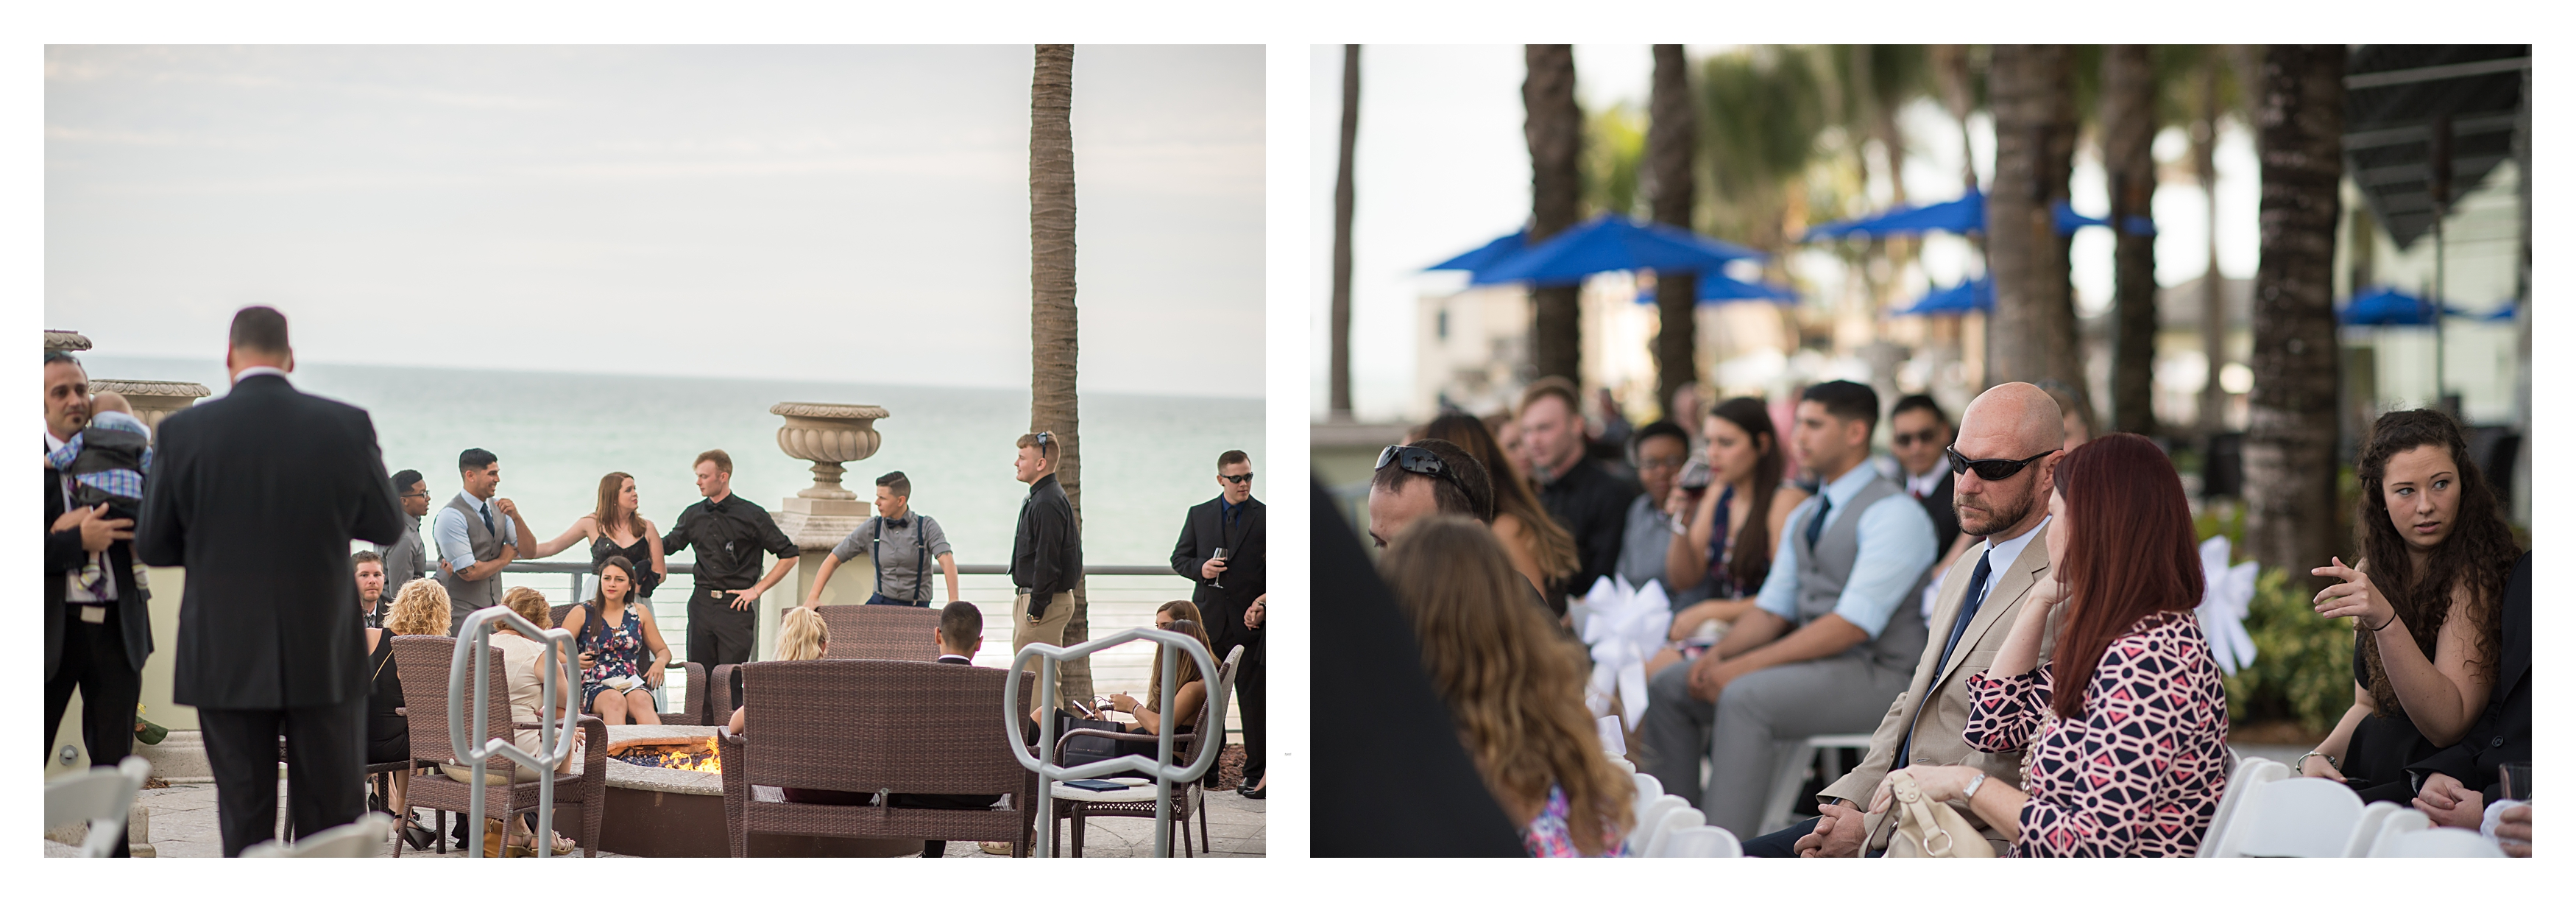 Vero Beach Wedding_0009